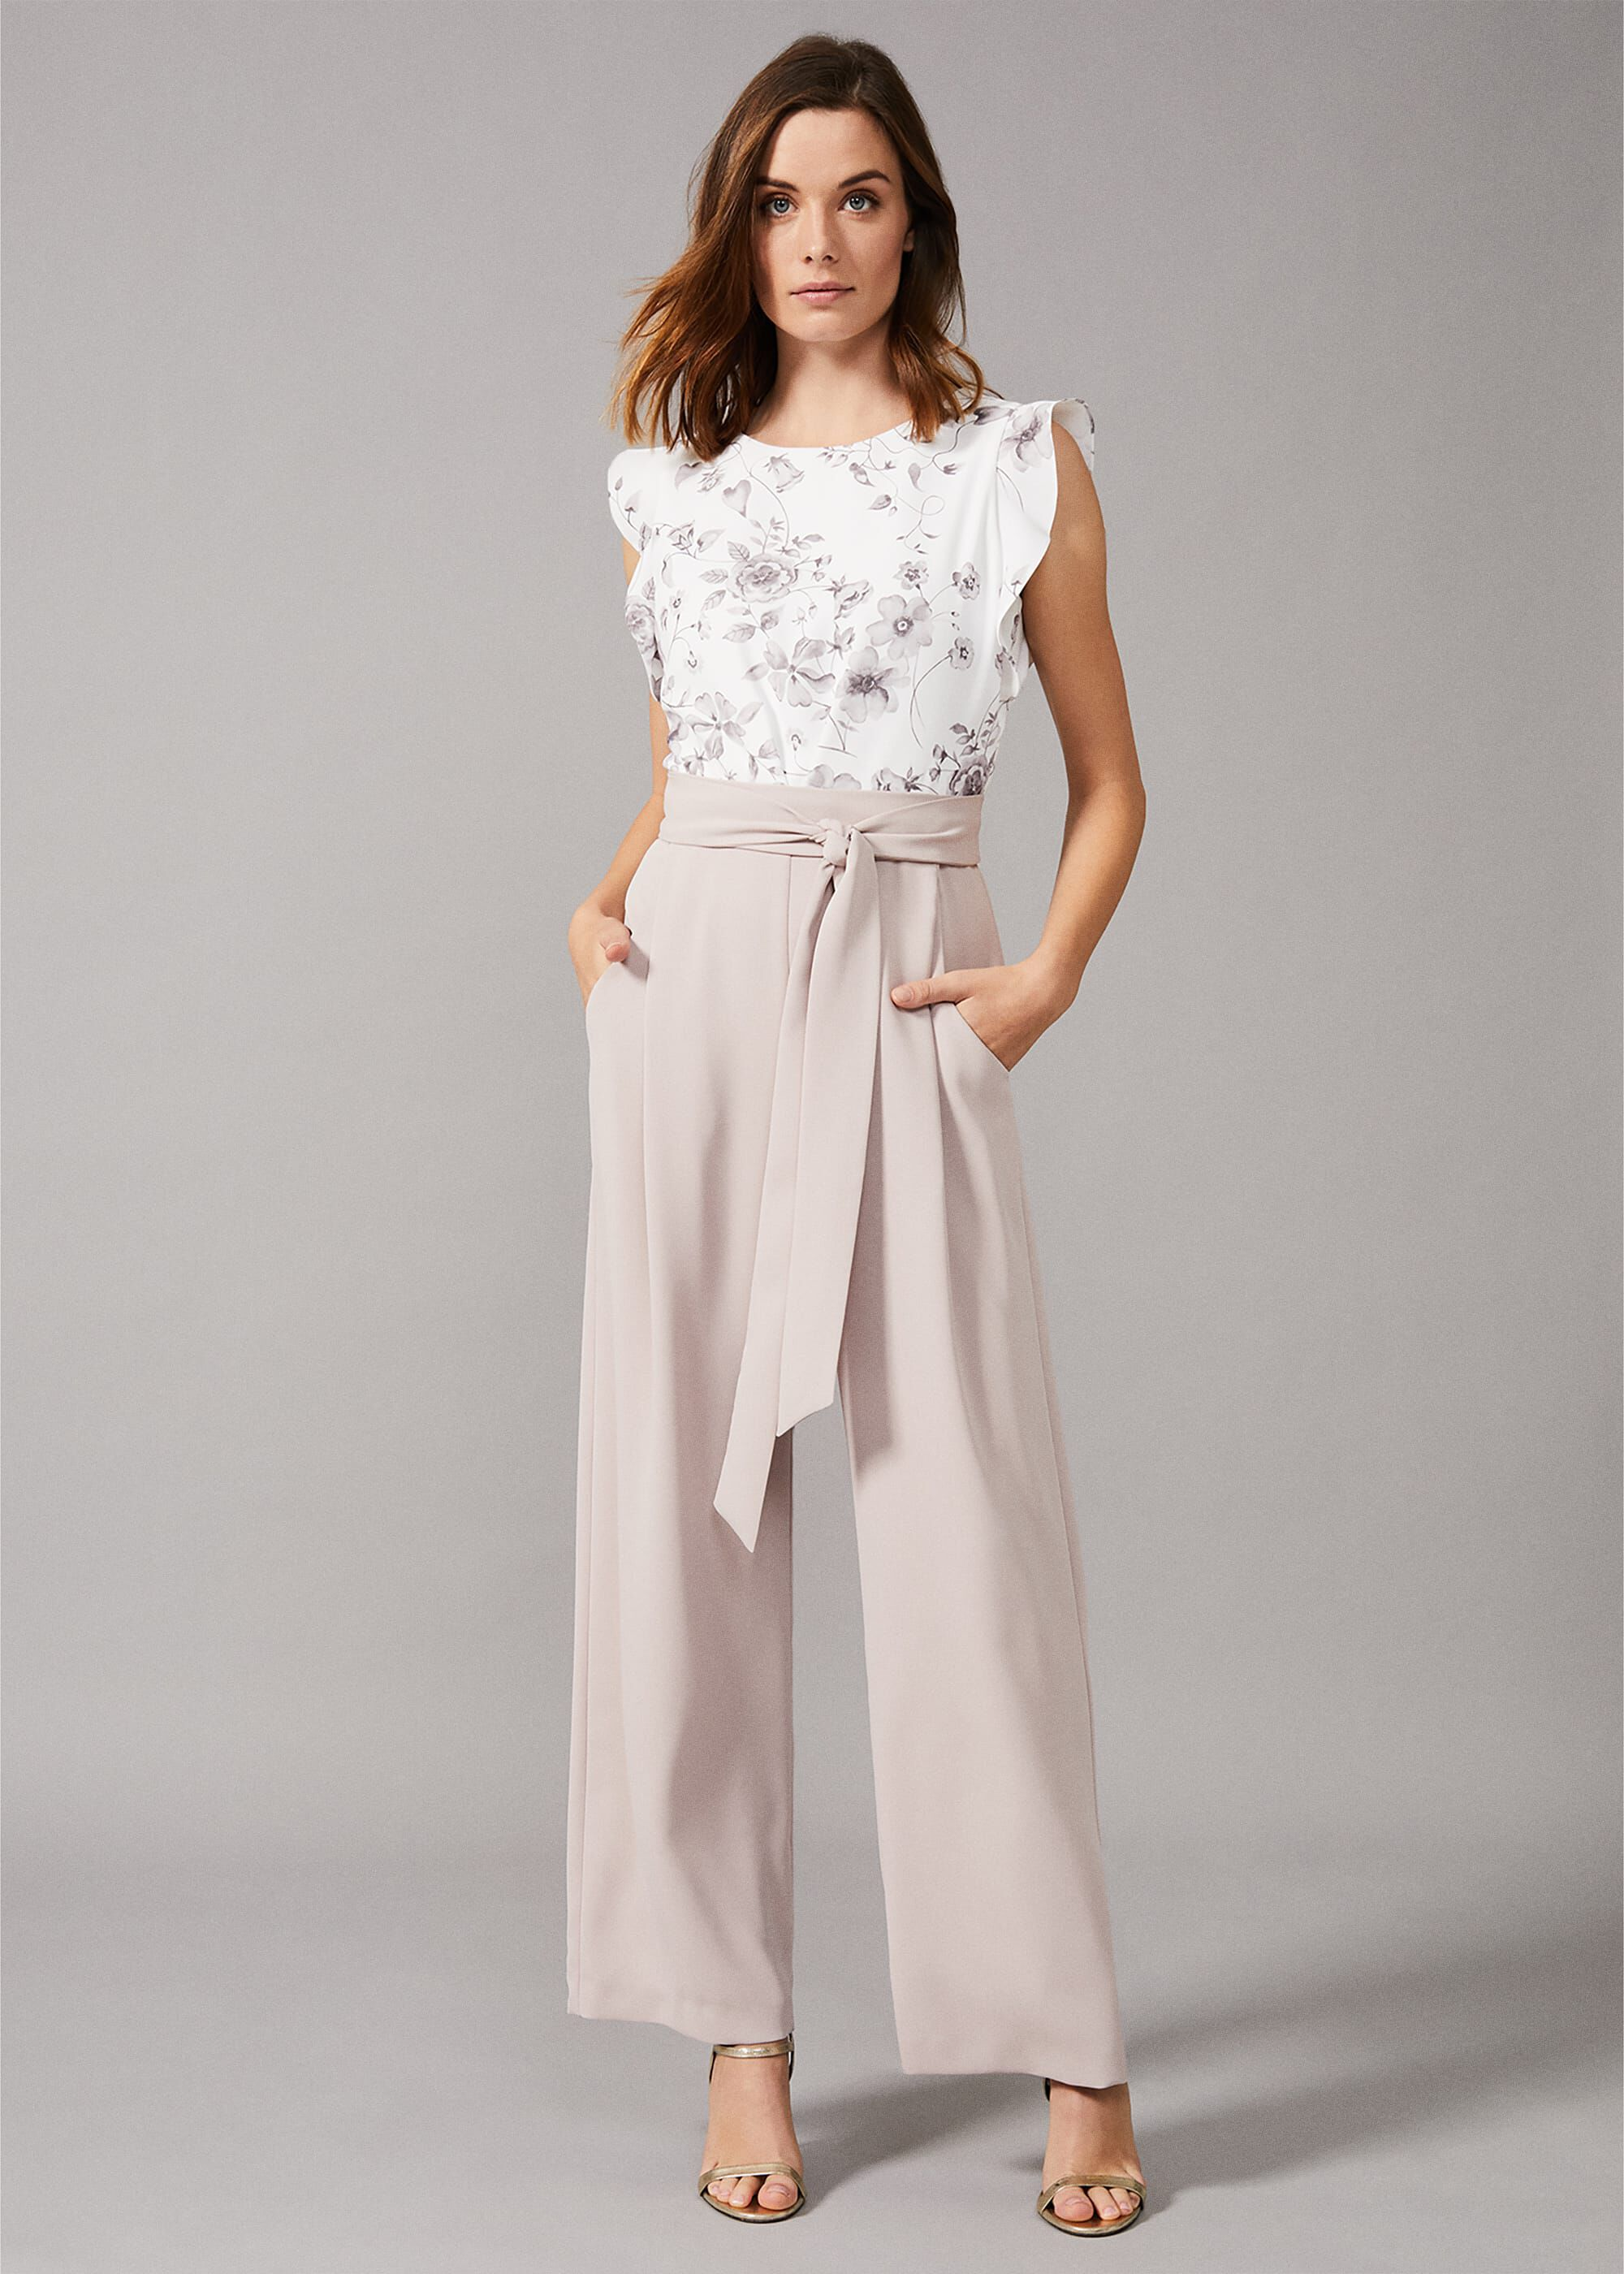 Phase Eight Victoriana Printed Jumpsuit, Cream, Jumpsuit